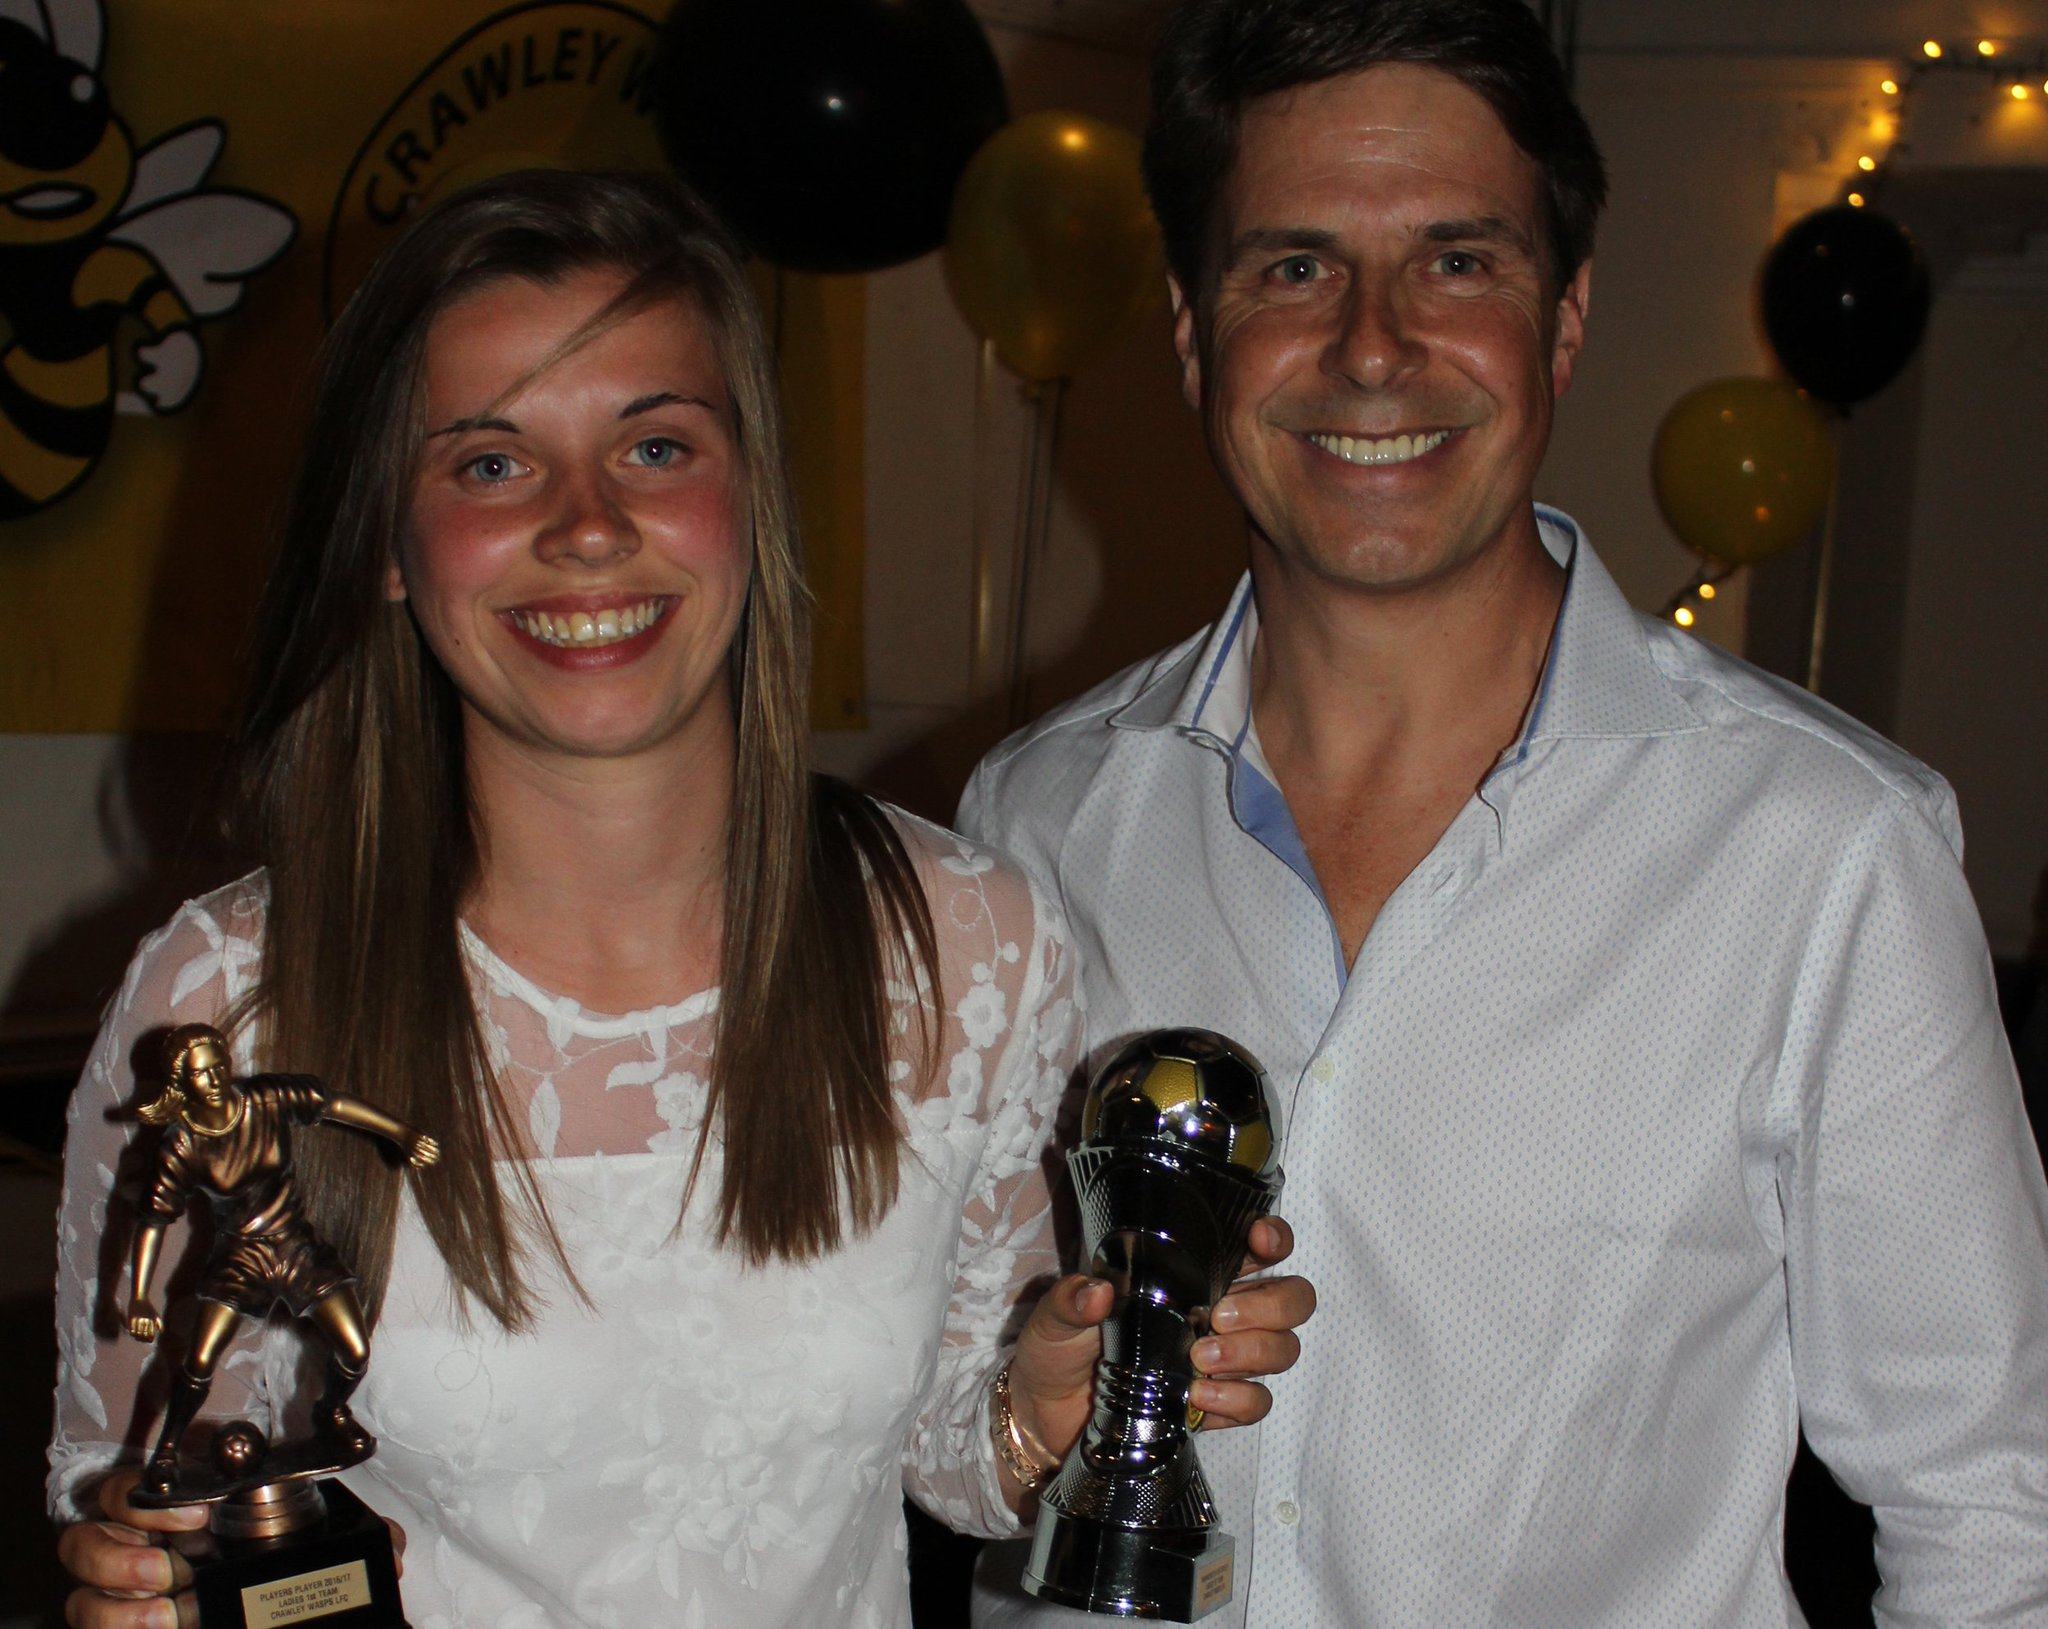 Holly Walker, Crawley Wasps' players' player and manager's player of the season 2016/17, with her managear and father, Paul Walker (Photo: Karen Beckett)